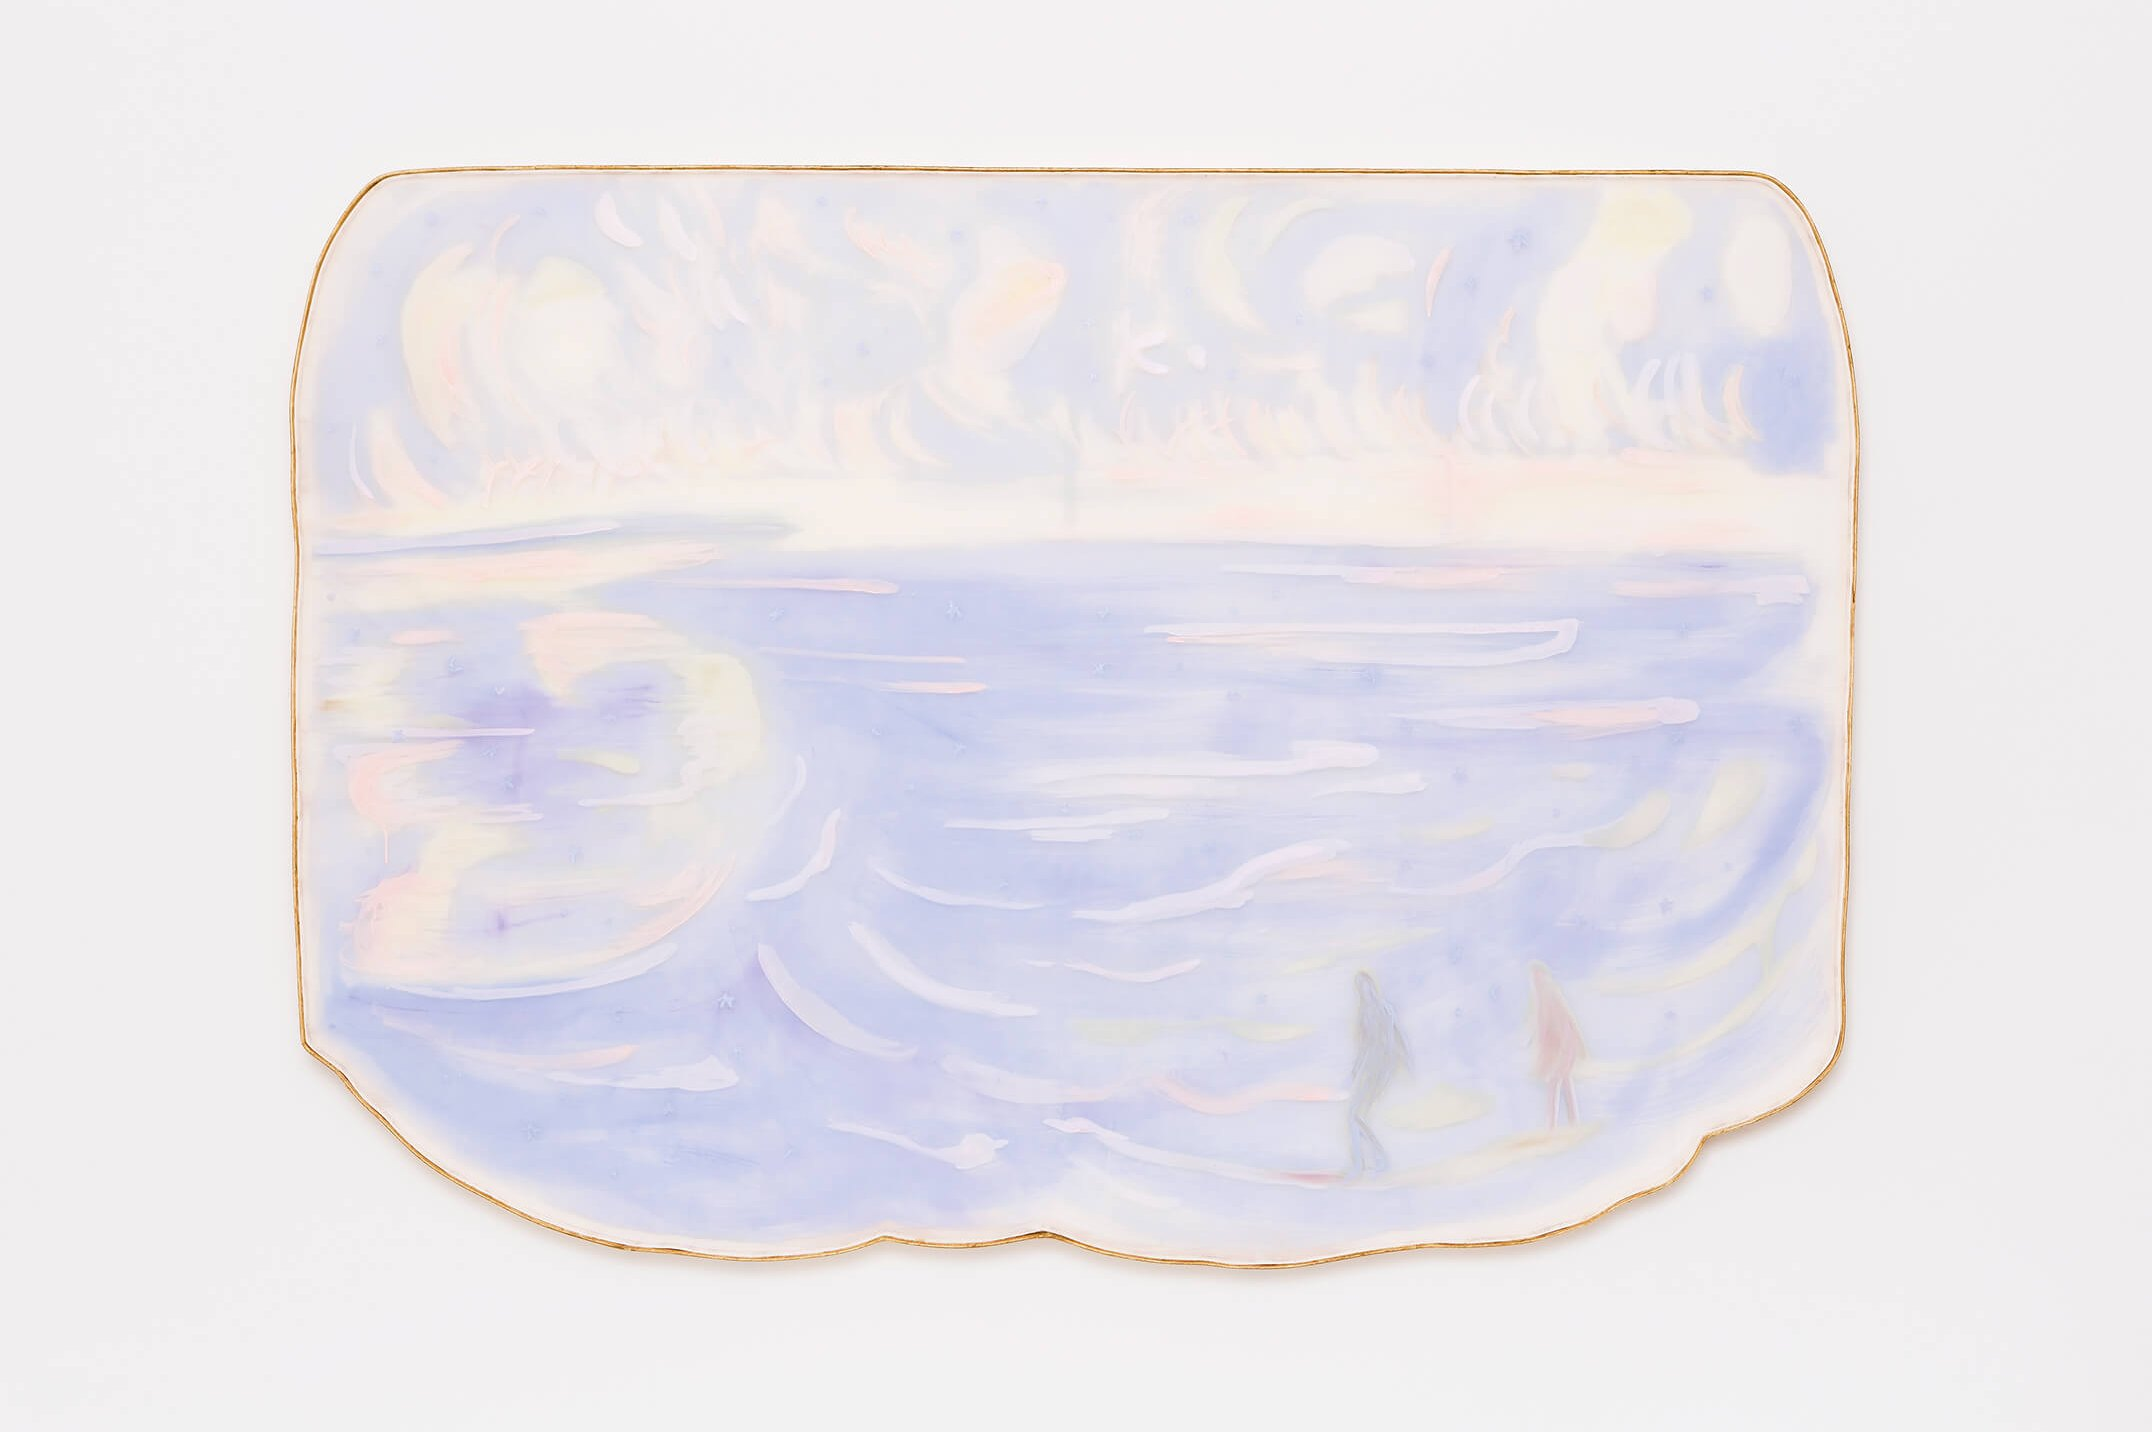 Marina Perez Simão,<em>untitled</em>,2015,acrylic and iridescent pigment on polyester paper assembled on wood, 152,5 × 217 × 5cm - Mendes Wood DM